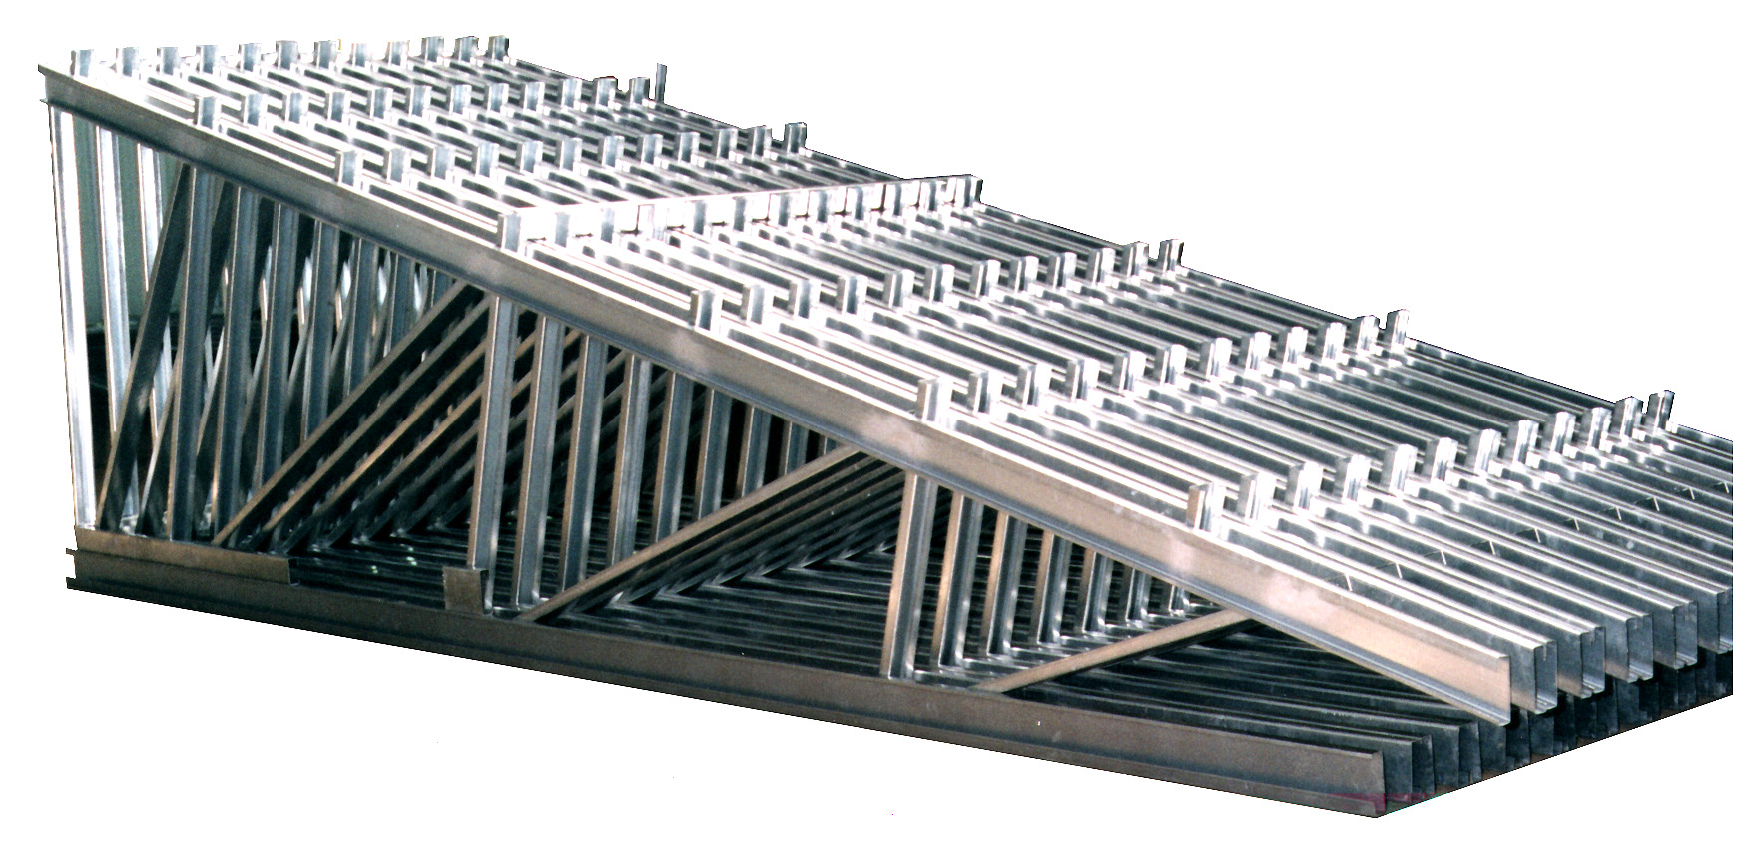 Compact Truss Design allows easy shipment and unloading. Trusses  ready to be shipped to the building site.